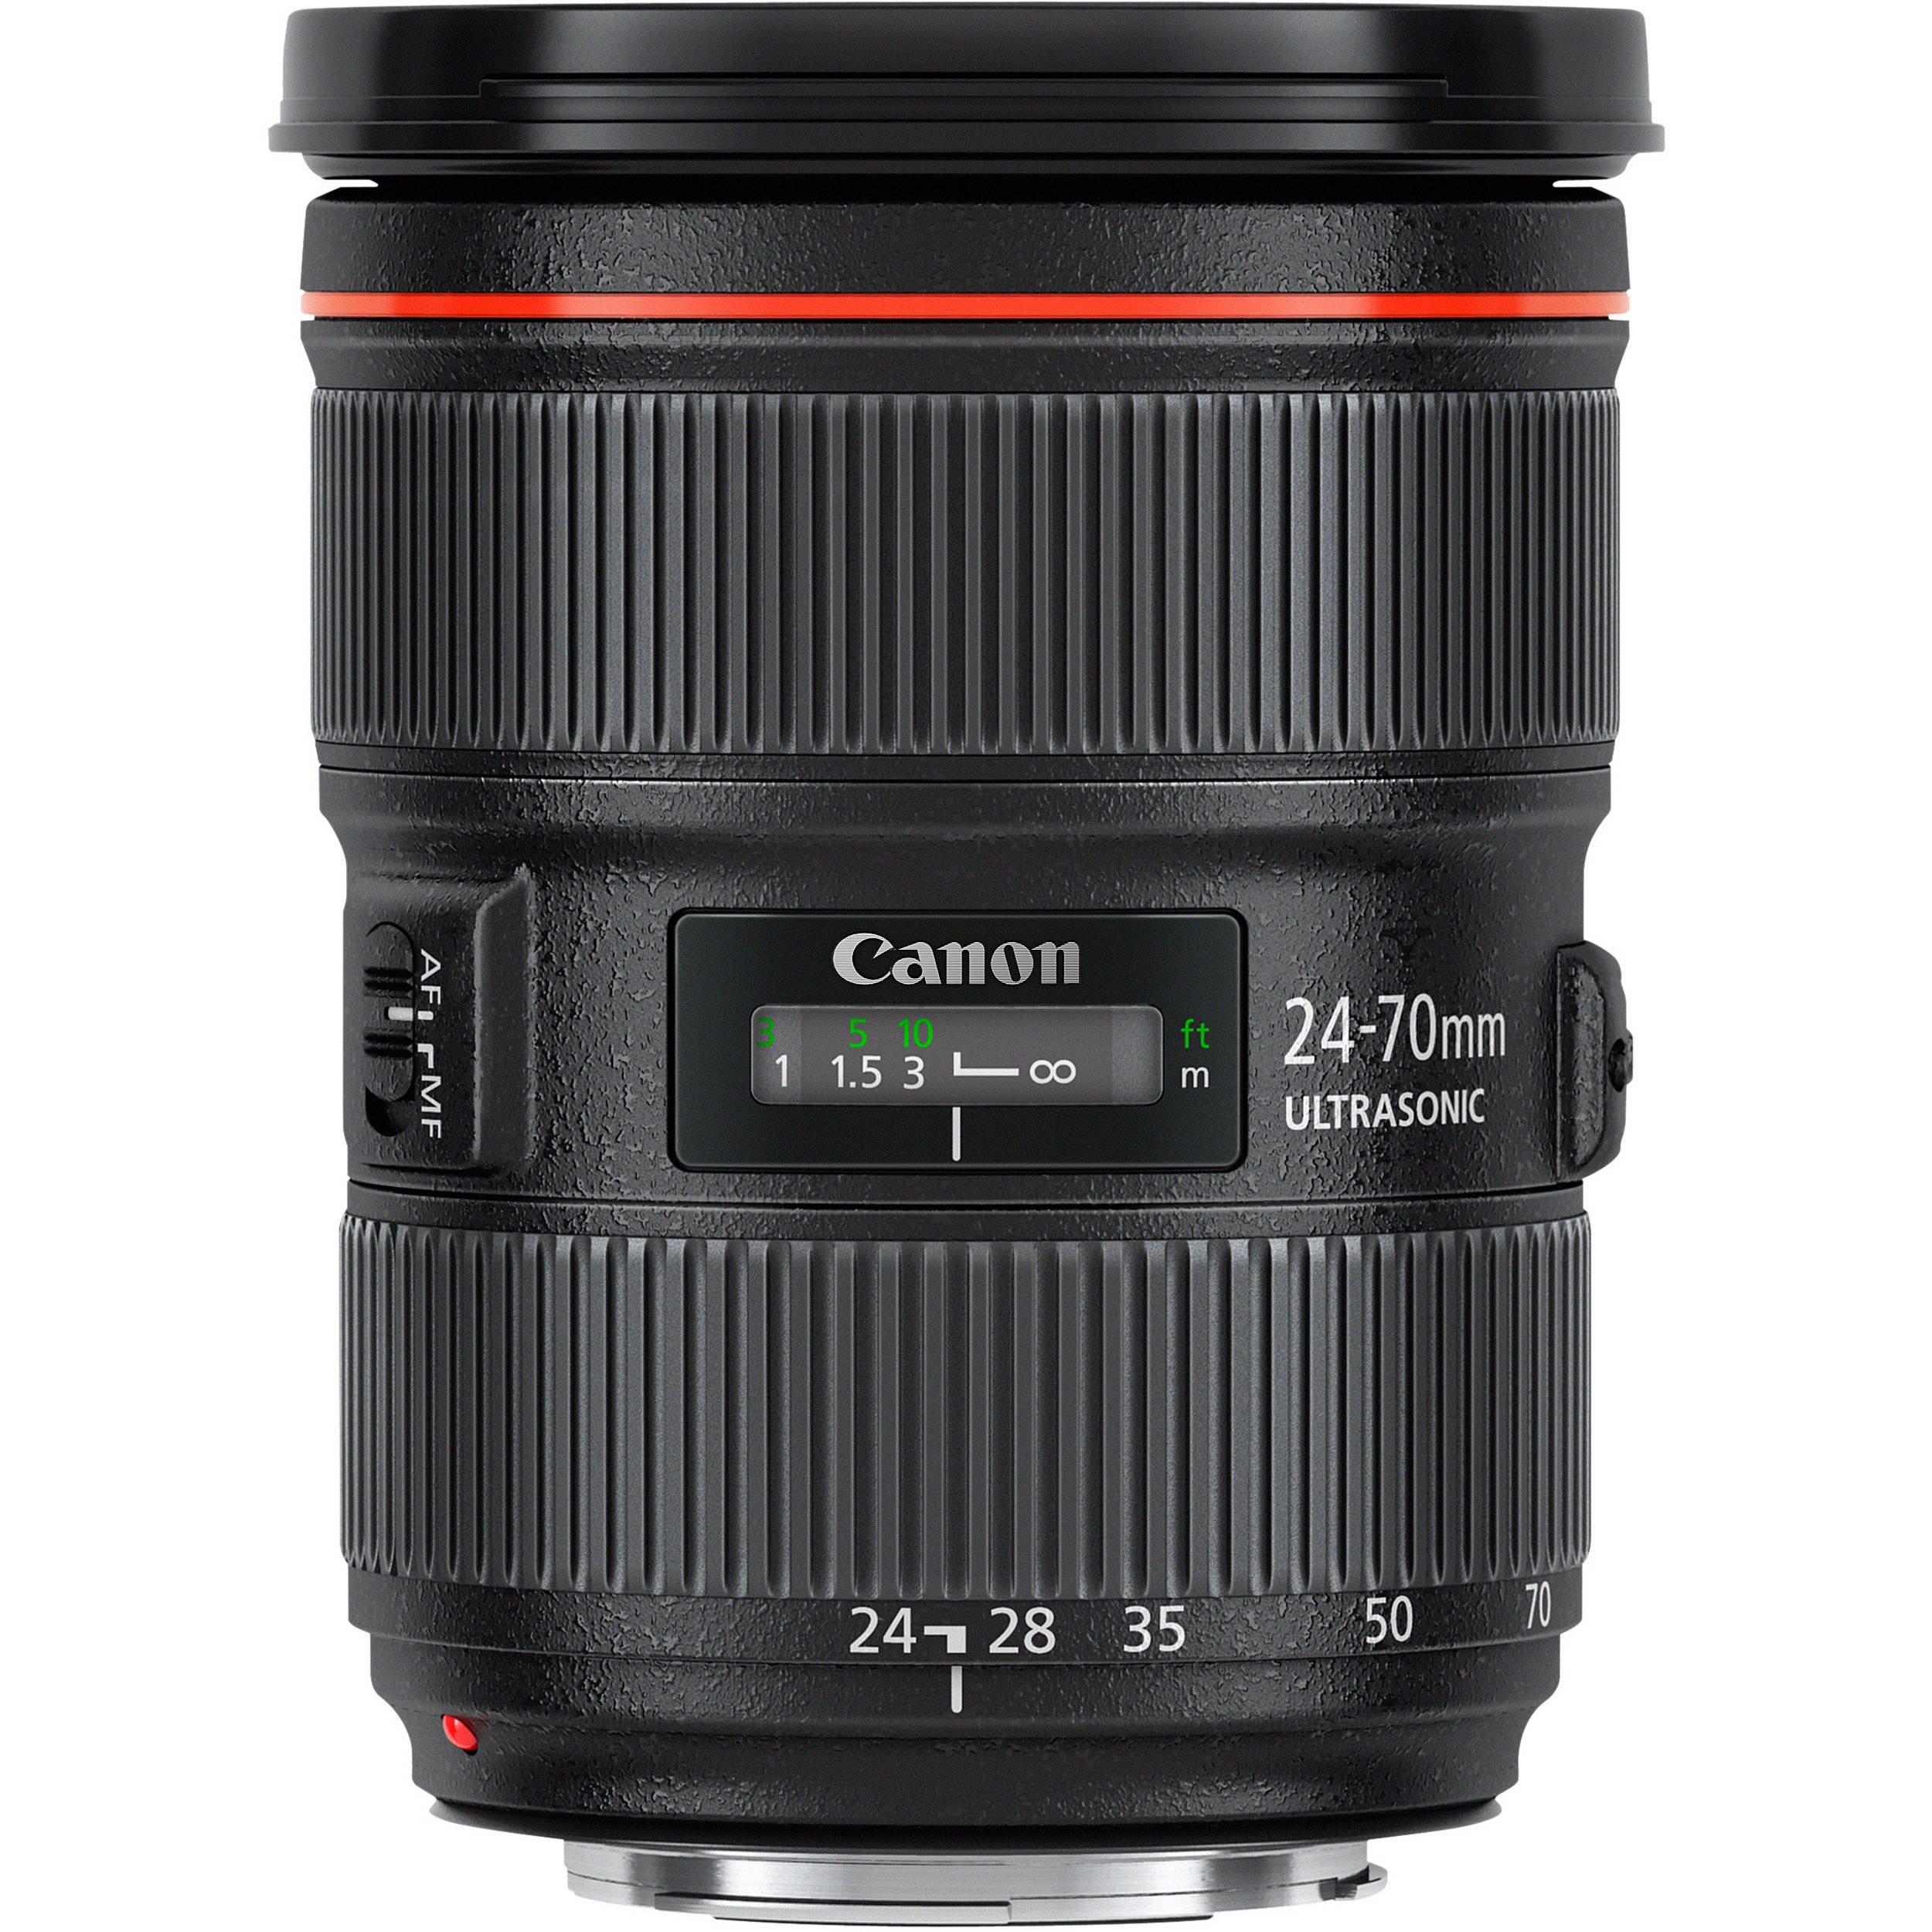 Canon EF 24-70mm f/2.8L II USM Lens with Professional Bundle Package Deal Kit for EOS 7D Mark II, 6D Mark II, 5D Mark IV, 5D S R, 5D S, 5D Mark III, 80D, 70D, 77D, T5, T6, T6s, T7i, SL2 by Canon (Image #2)